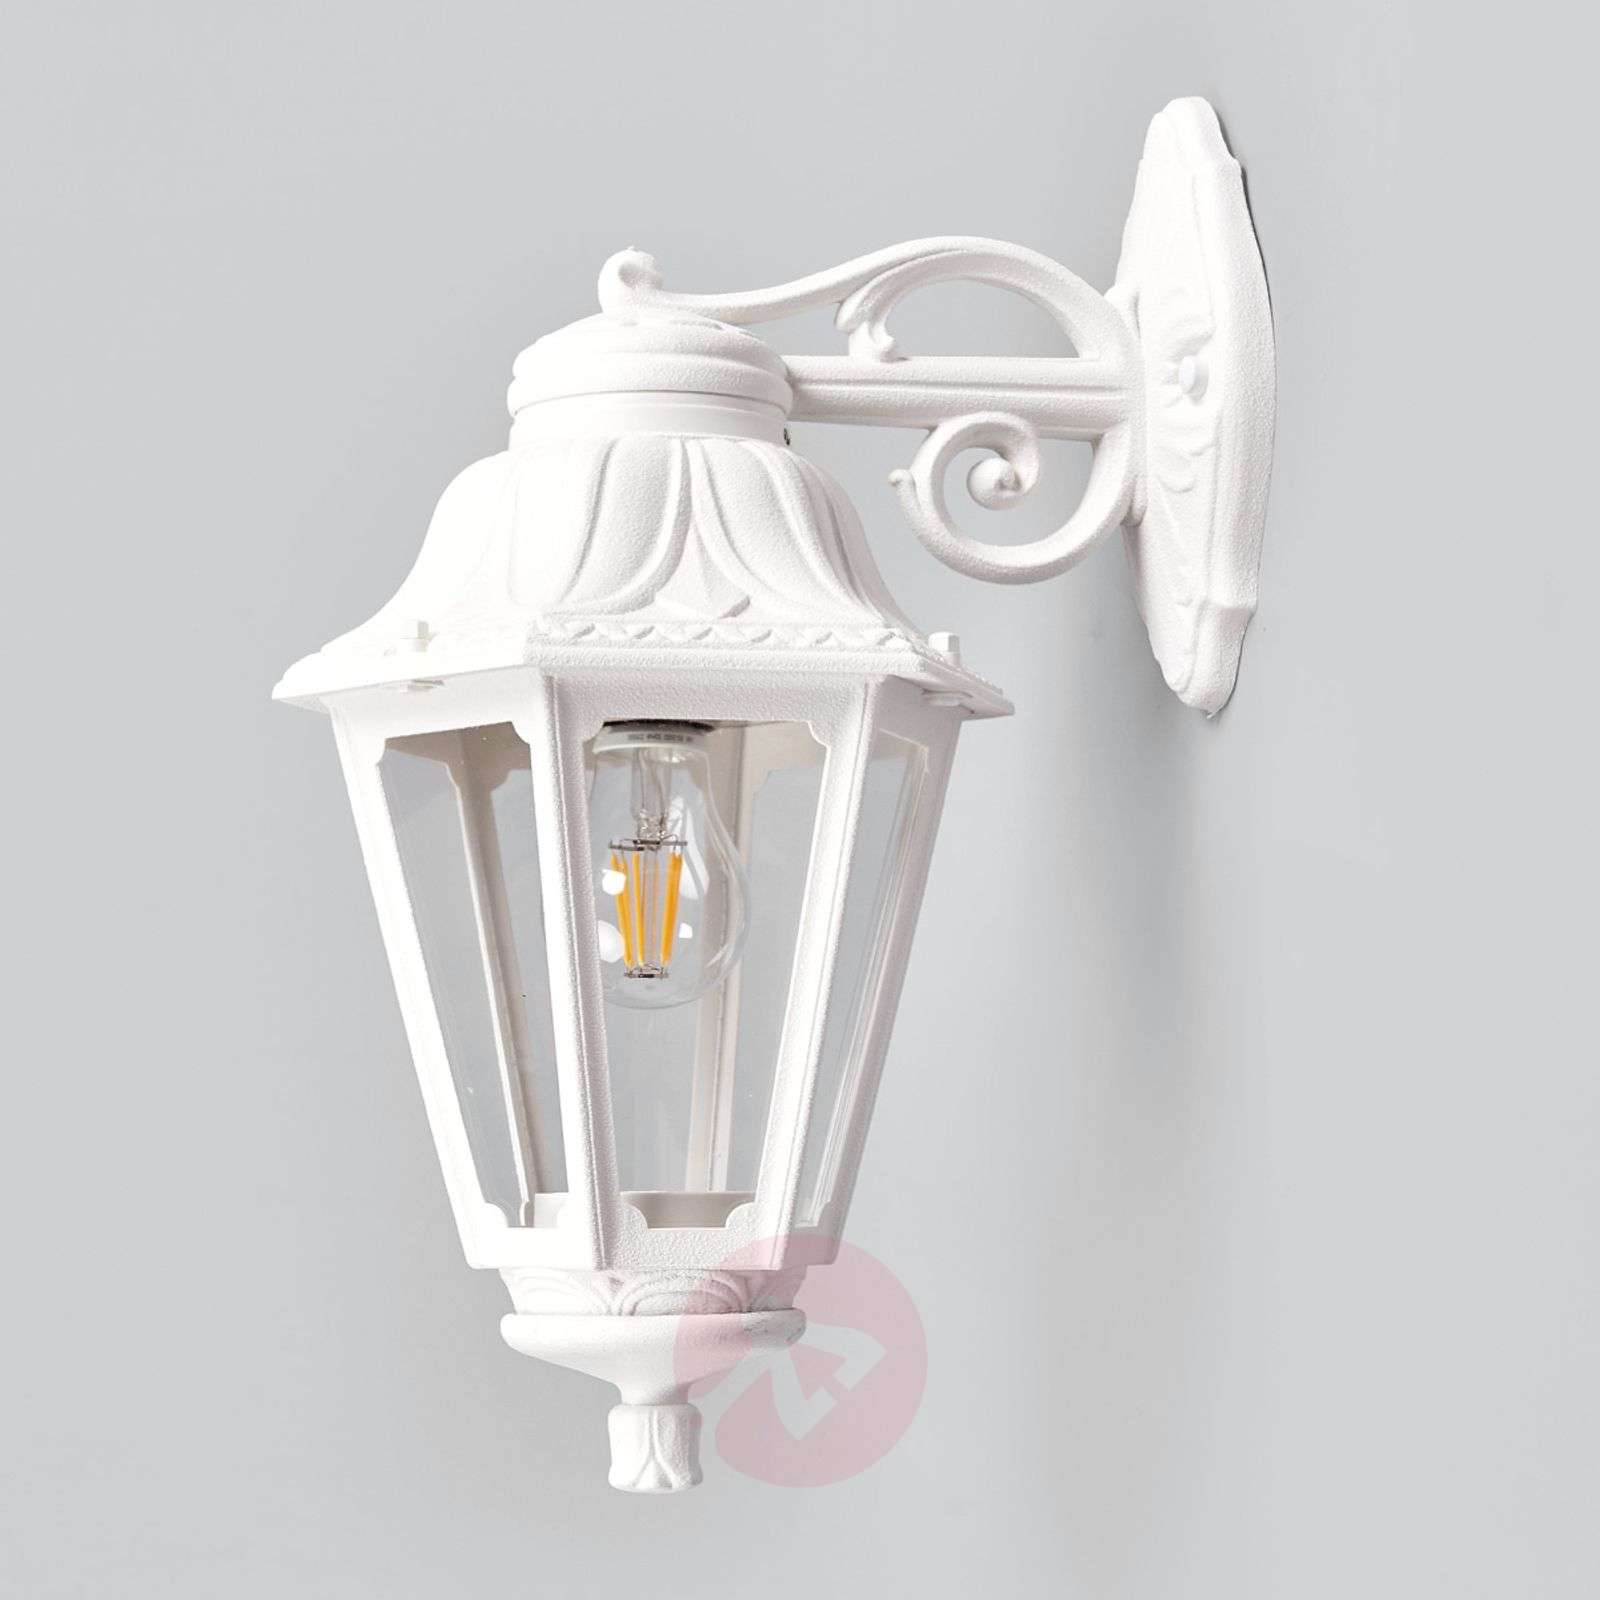 Wall Lantern Led : LED outdoor wall light Bisso Anna, lantern down Lights.co.uk